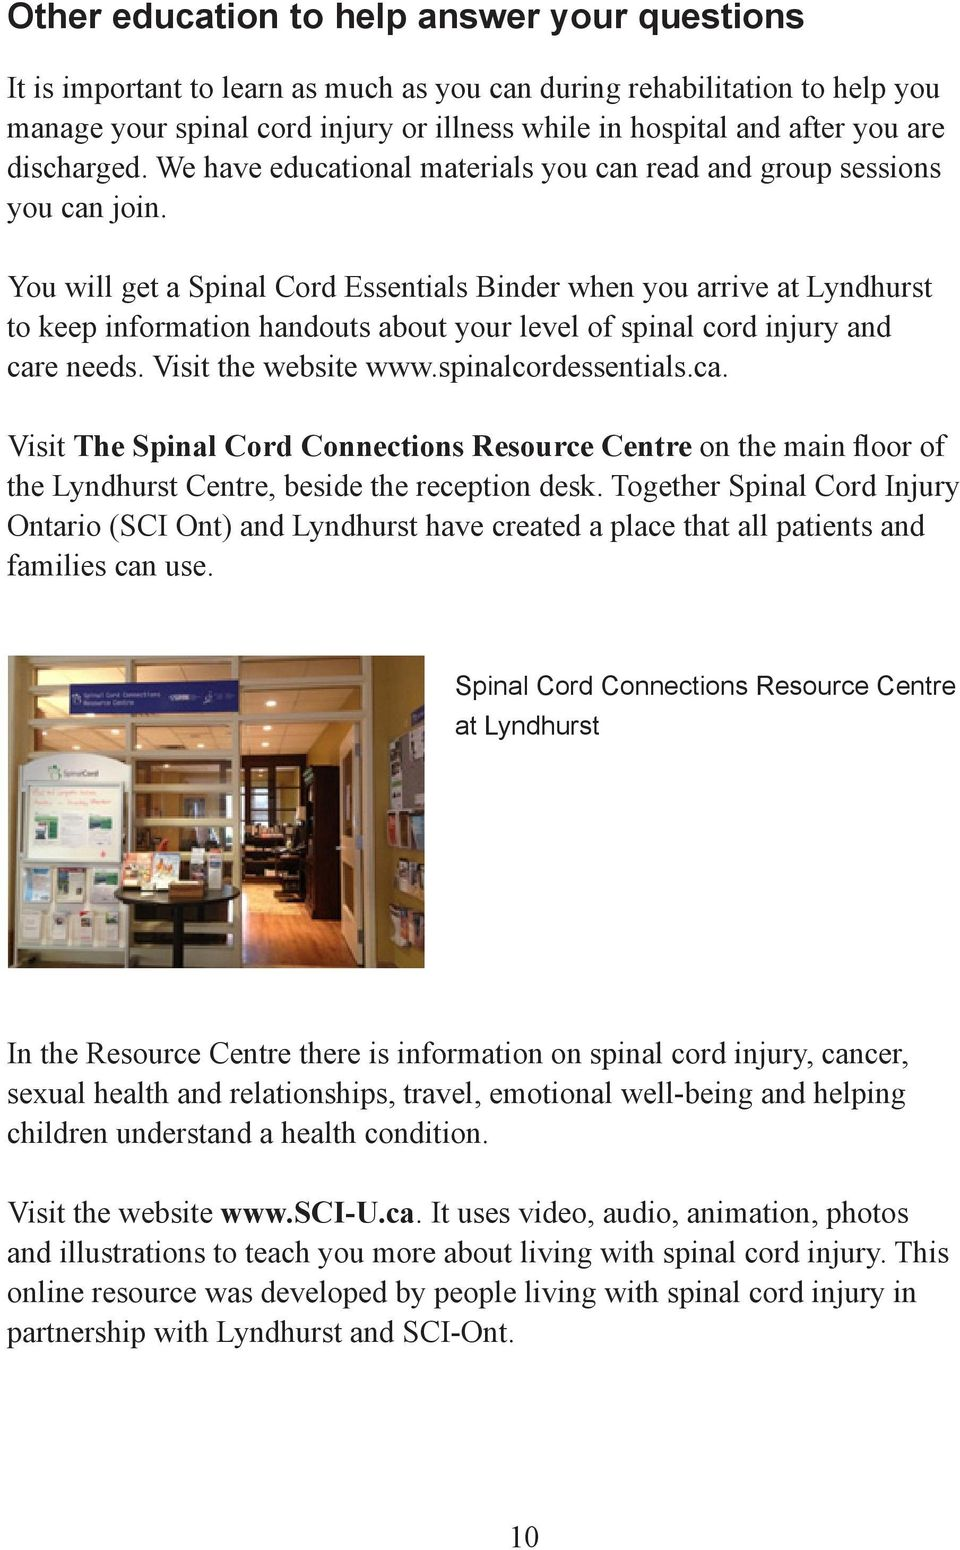 You will get a Spinal Cord Essentials Binder when you arrive at Lyndhurst to keep information handouts about your level of spinal cord injury and care needs. Visit the website www.